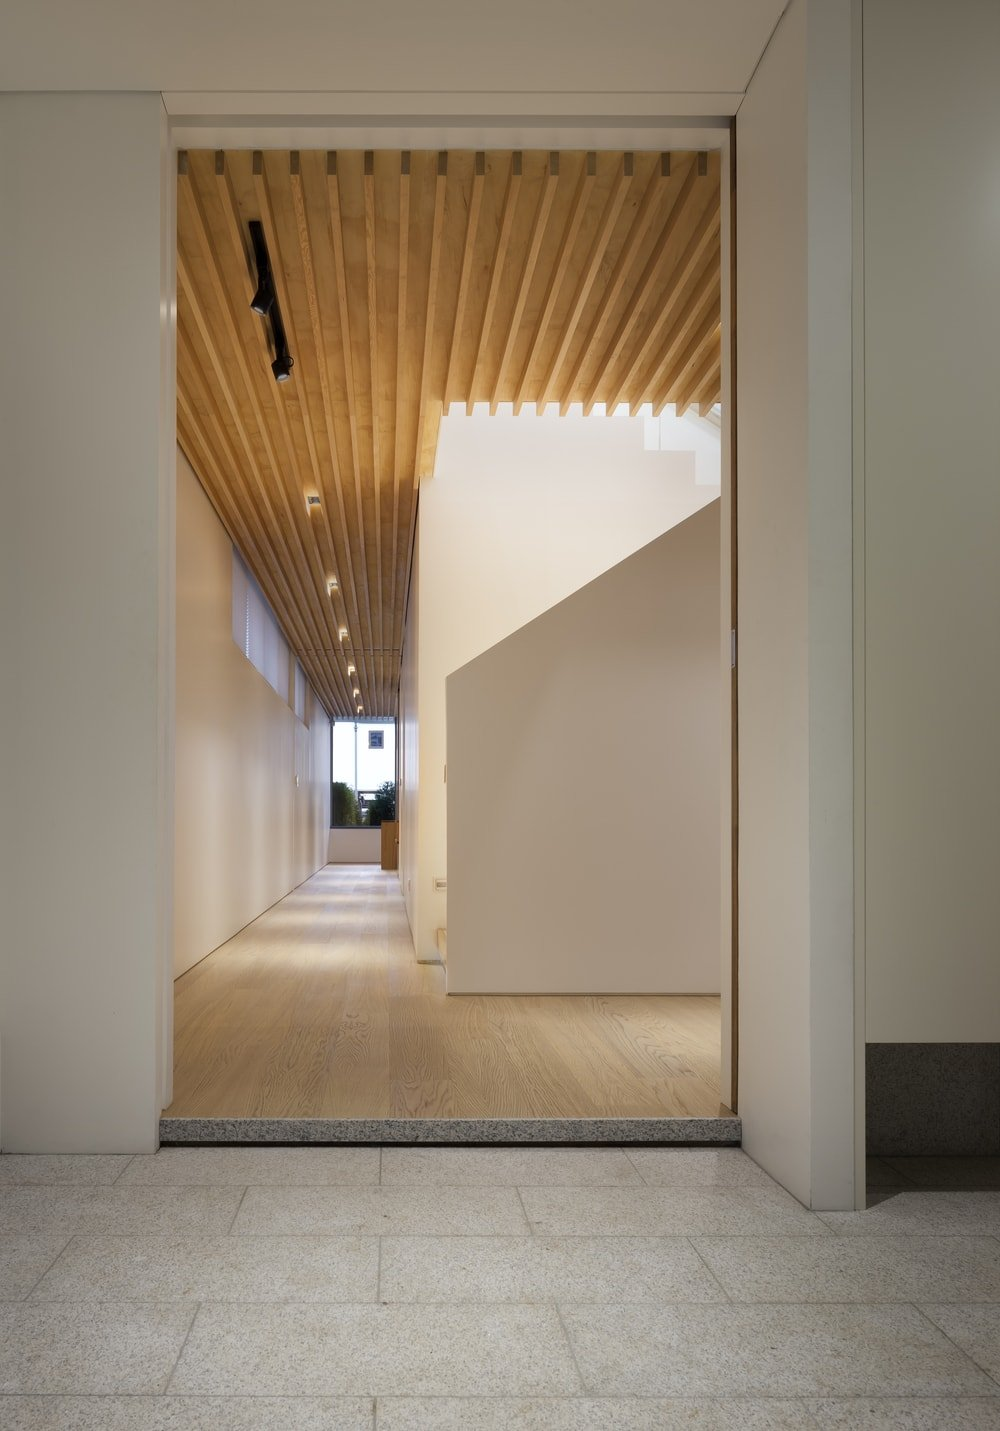 This view of the interior features the wooden beamed ceiling with modern lighting over the hardwood flooring.